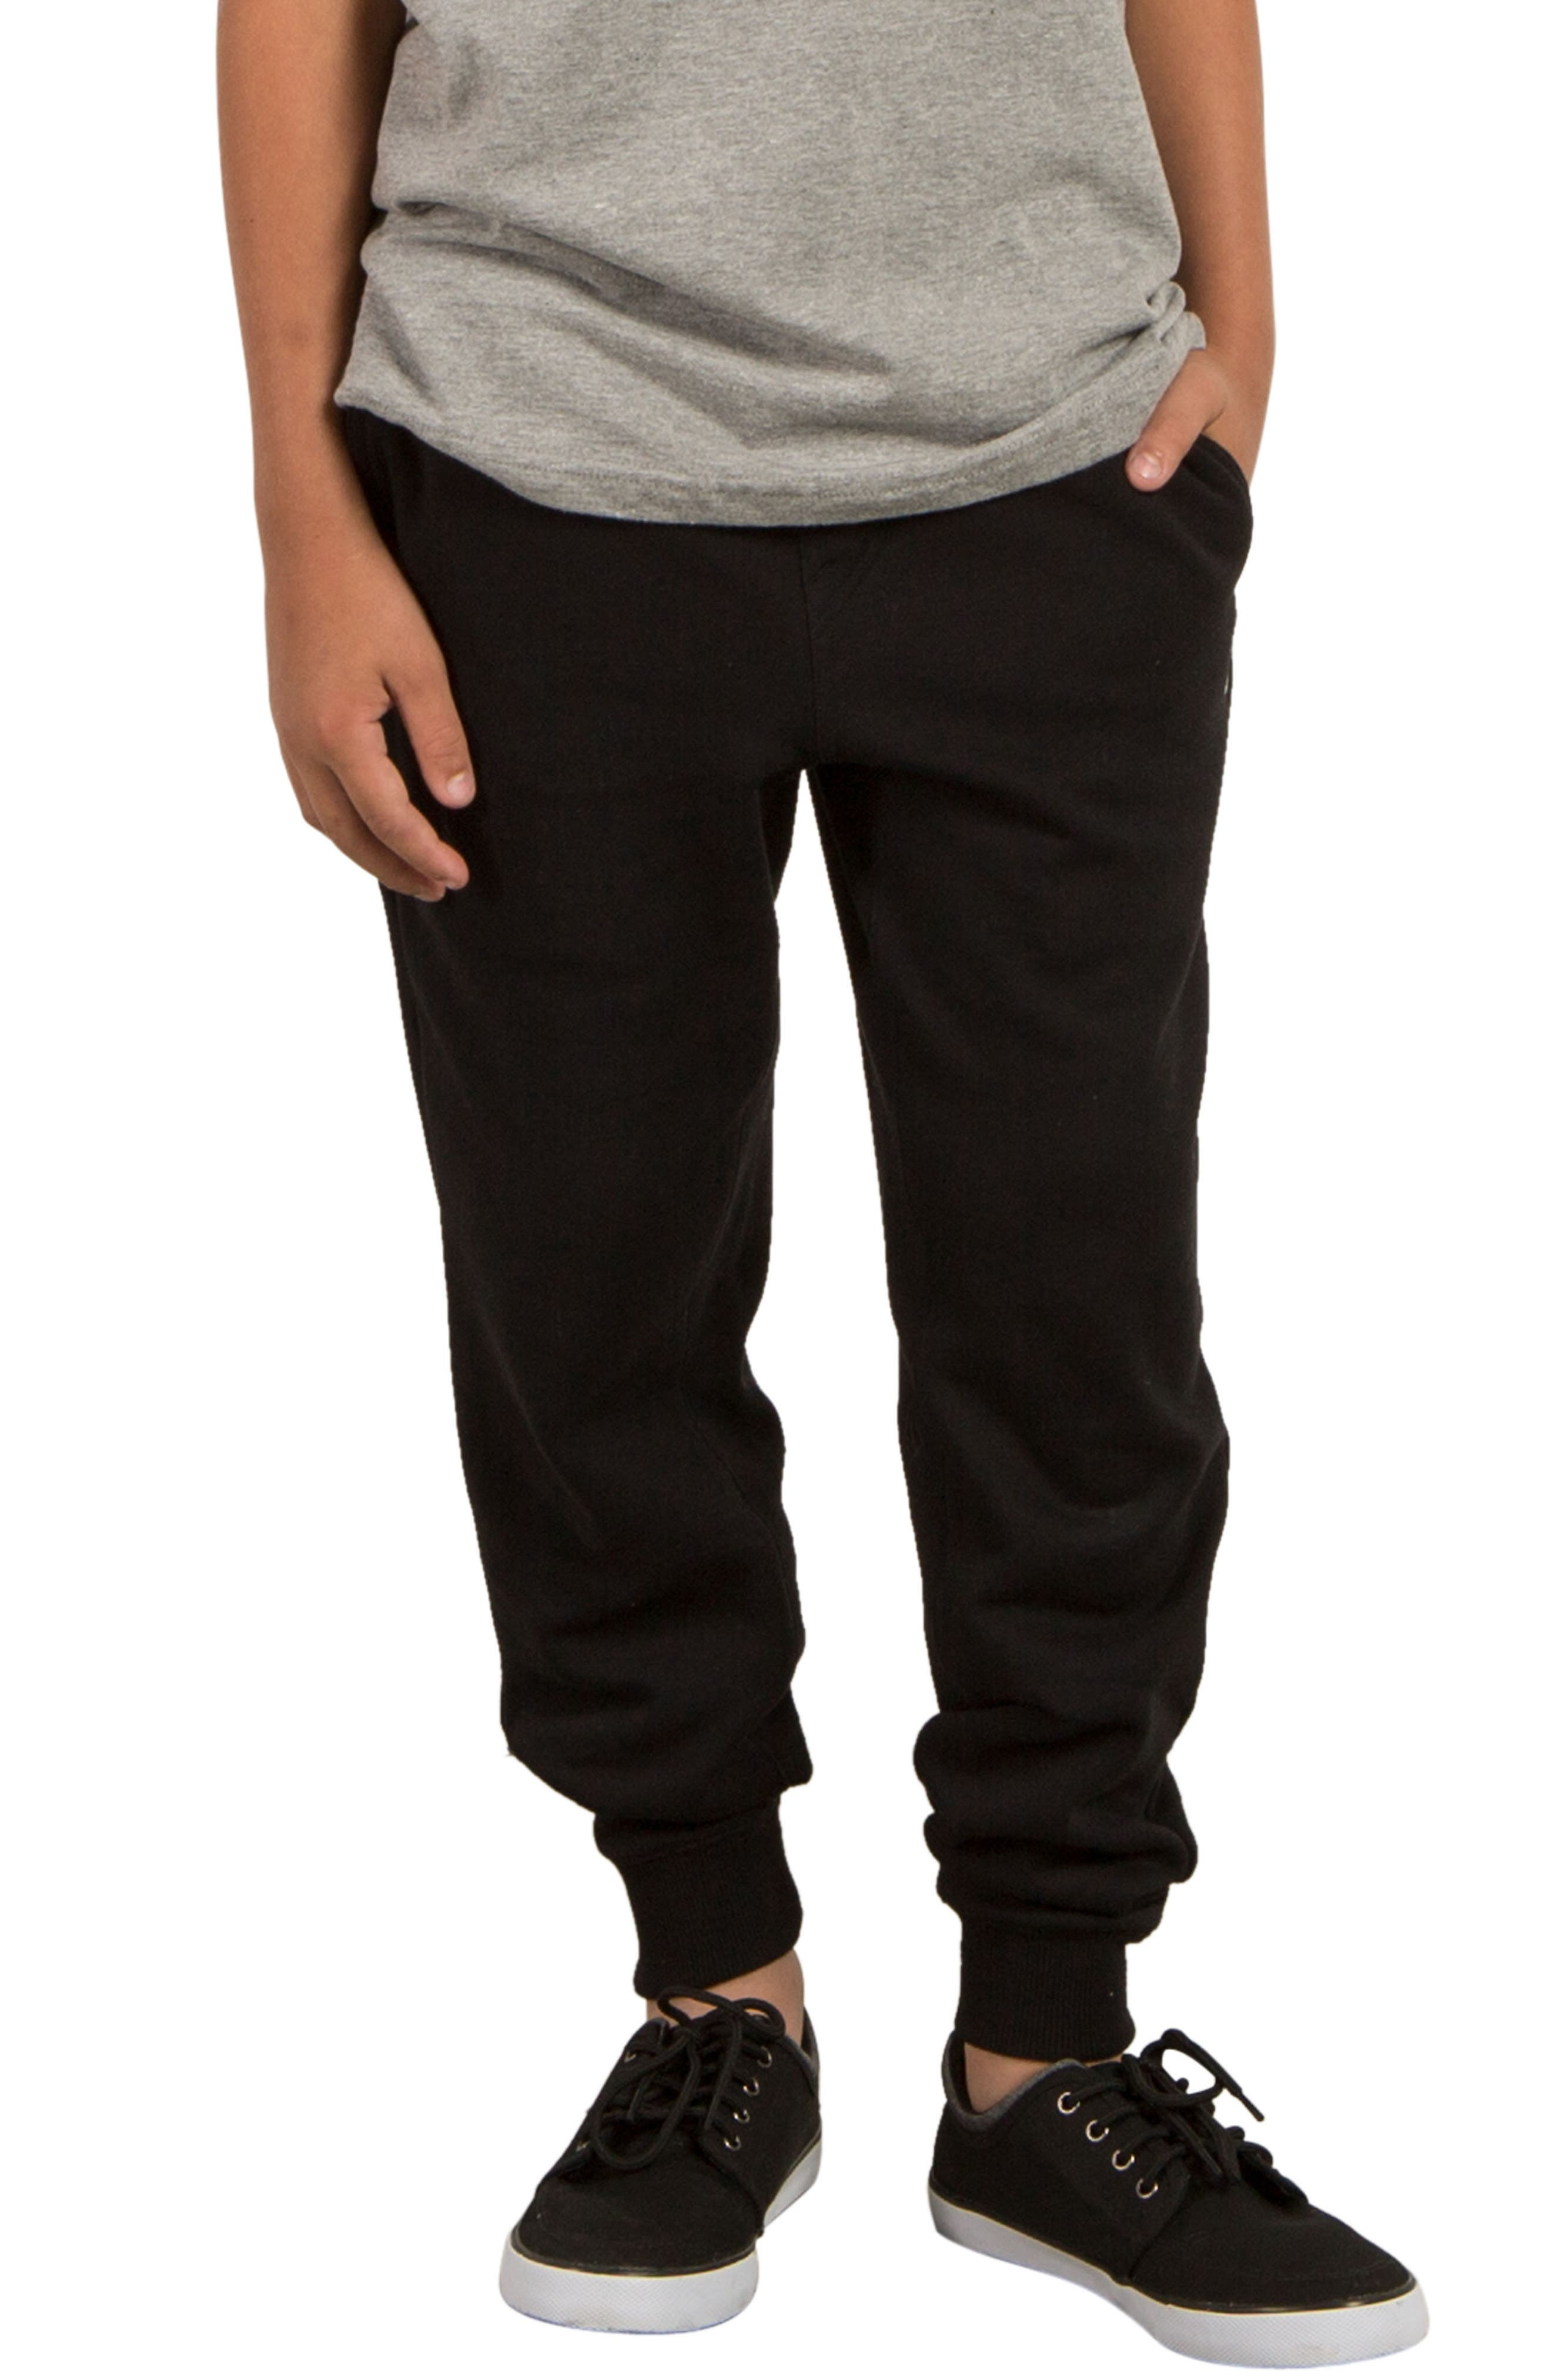 Alternate Image 1 Selected - Volcom Single Stone Fleece Sweatpants (Big Boys)